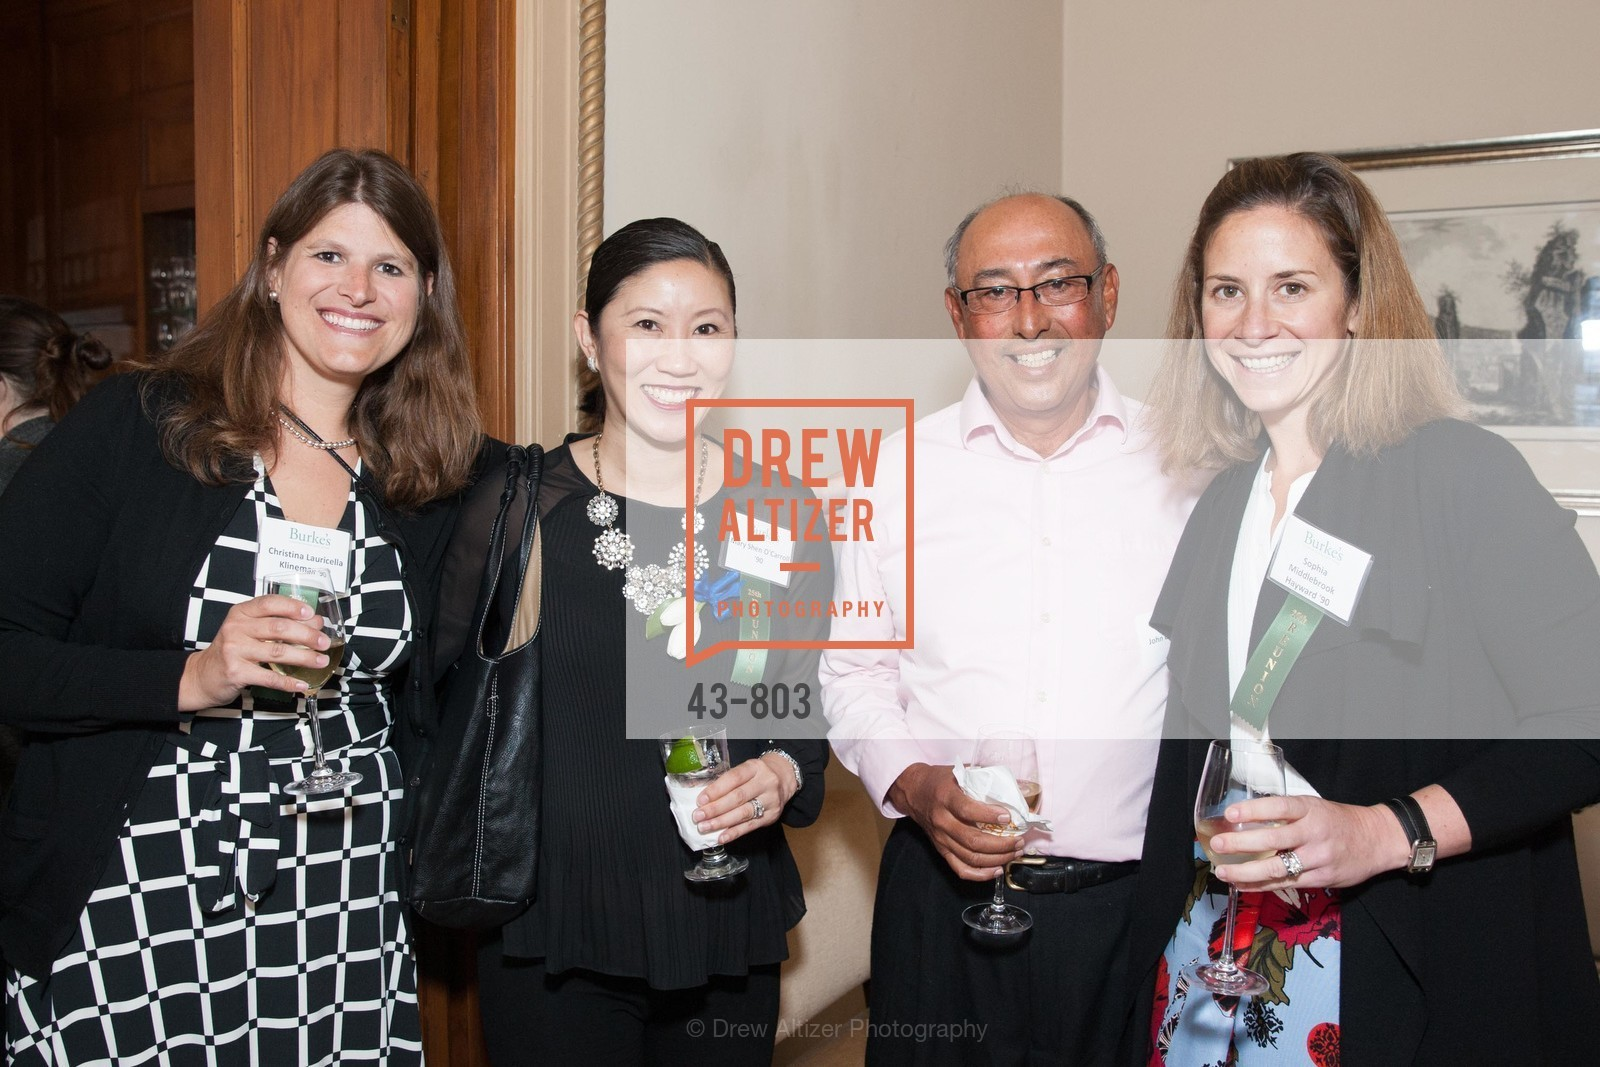 Christina Klineman, Mary Shen O'Carroll, John Cervantes, Sophia Middlebrooke Hayward, BURKE'S Alumnae Luncheon, US, April 25th, 2015,Drew Altizer, Drew Altizer Photography, full-service agency, private events, San Francisco photographer, photographer california